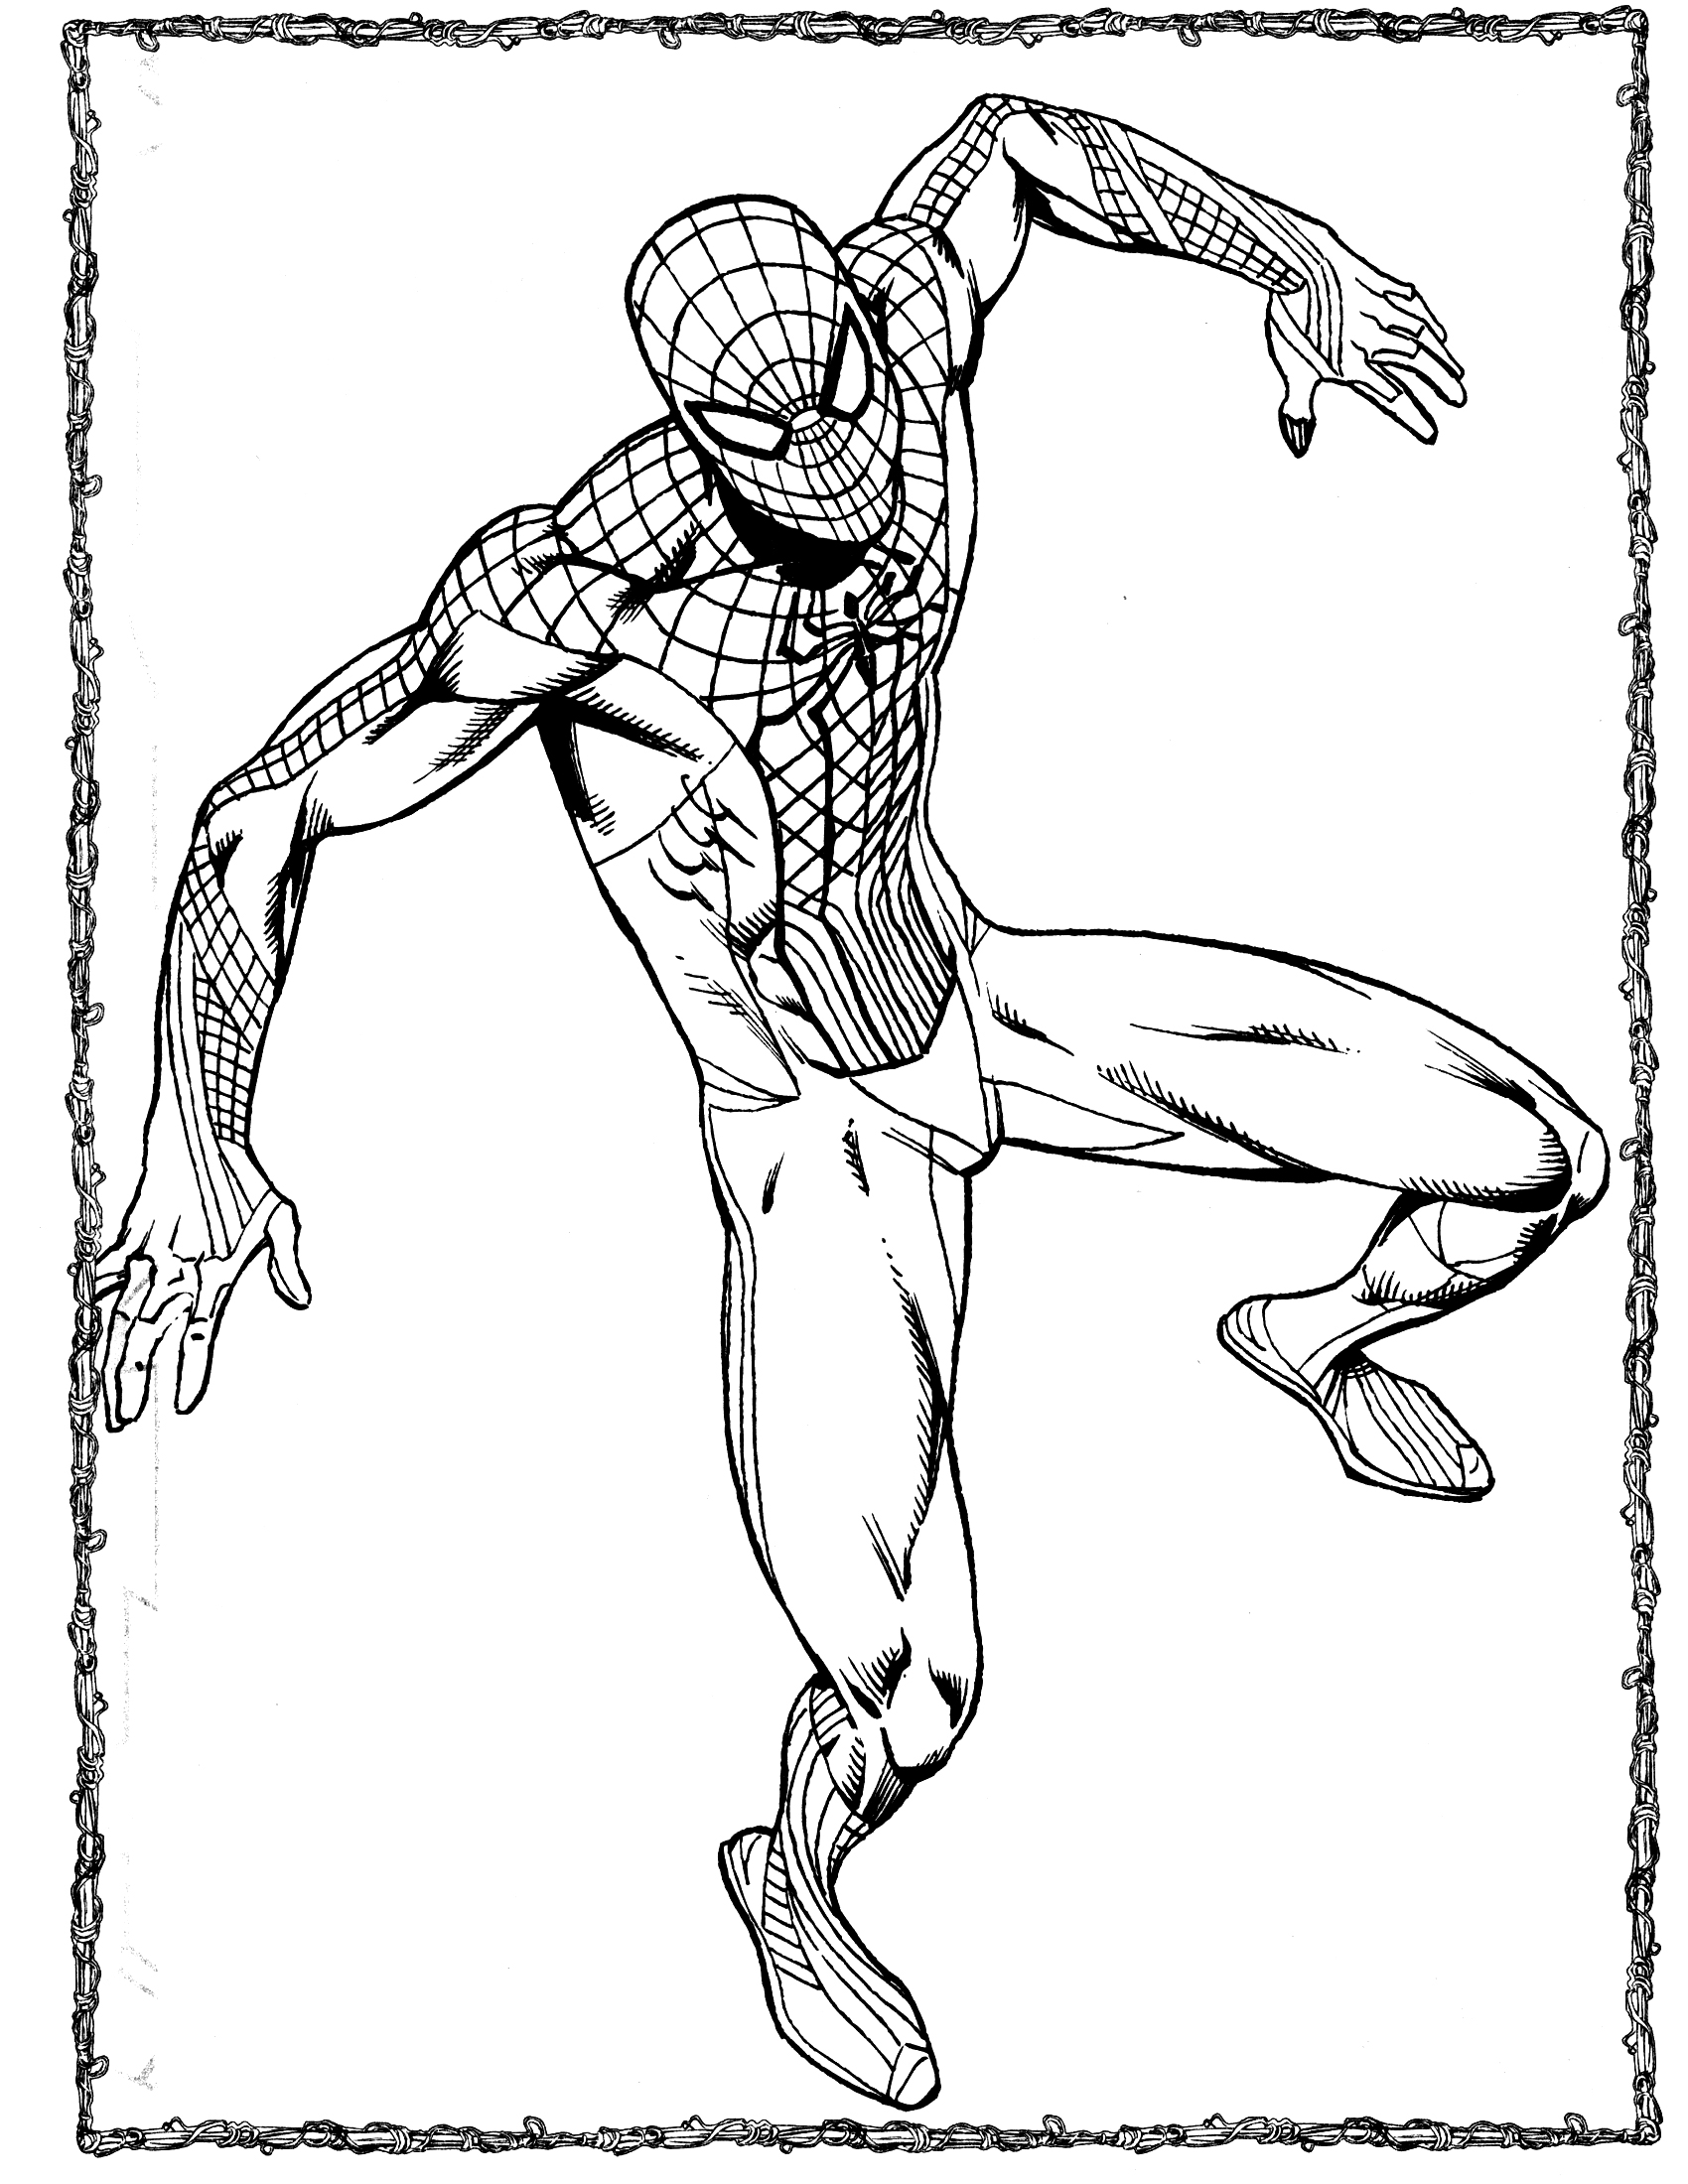 Disegno di spiderman da colorare Disegni spiderman da colorare gratis